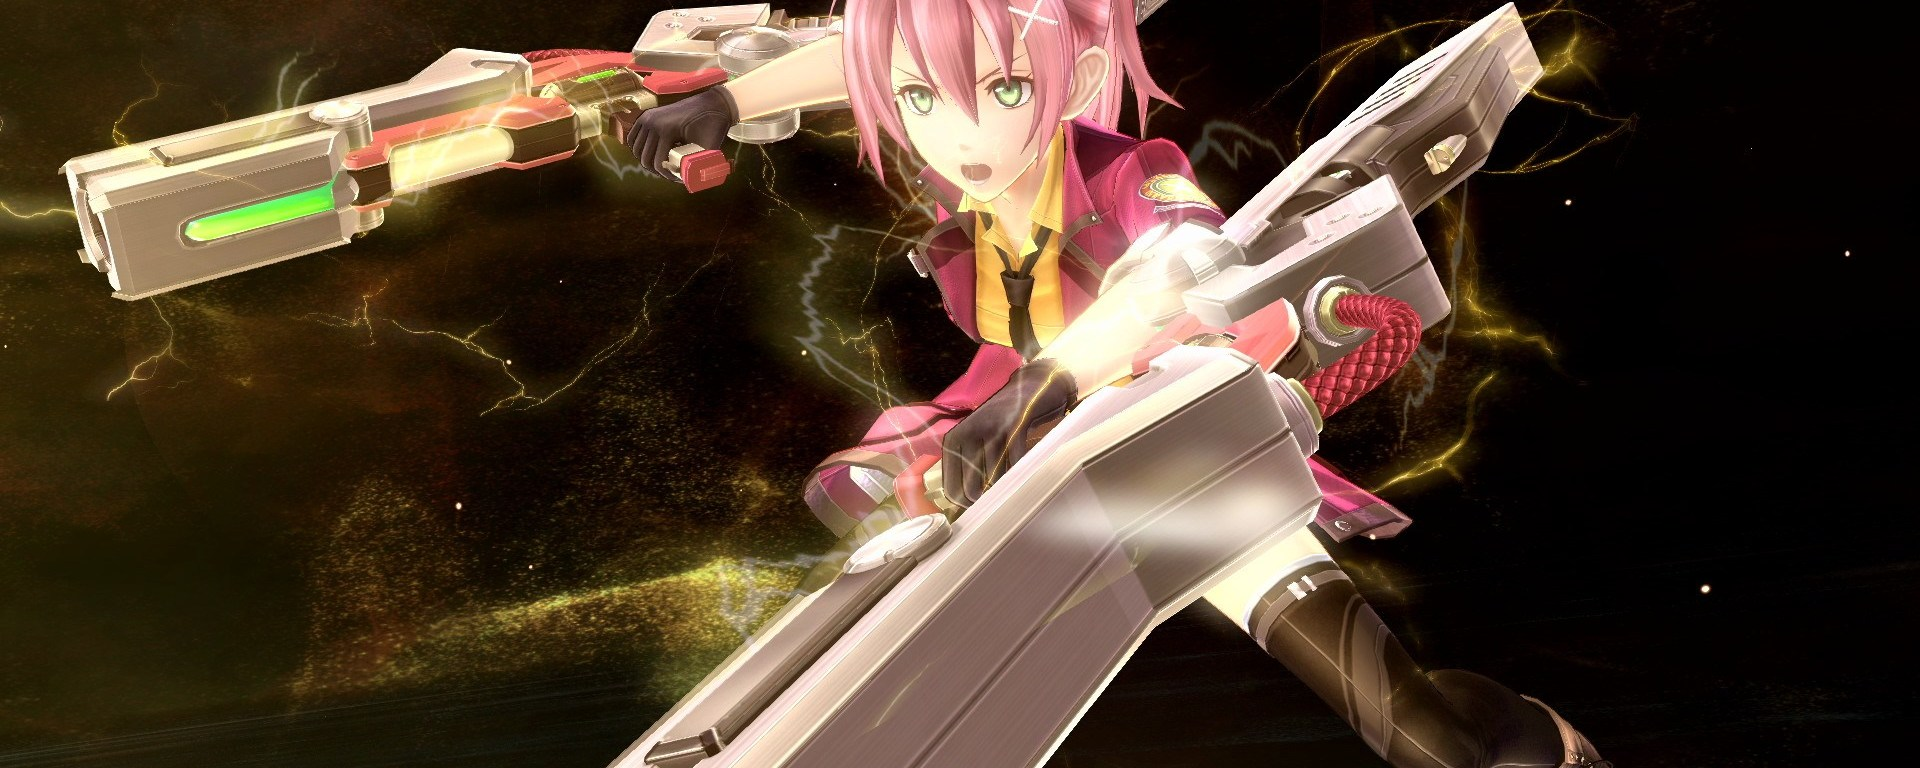 Tensions begin to arise as everyone prepares for the upcoming war in Erebonia. After the bomb The Legend of Heroes: Trails of Cold Steel III dropped on us, the new installment joins members new and old from the Class VIIs to band together for a decisive ending. NIS America sets the stage with the new Trails of Cold Steel IV trailer.